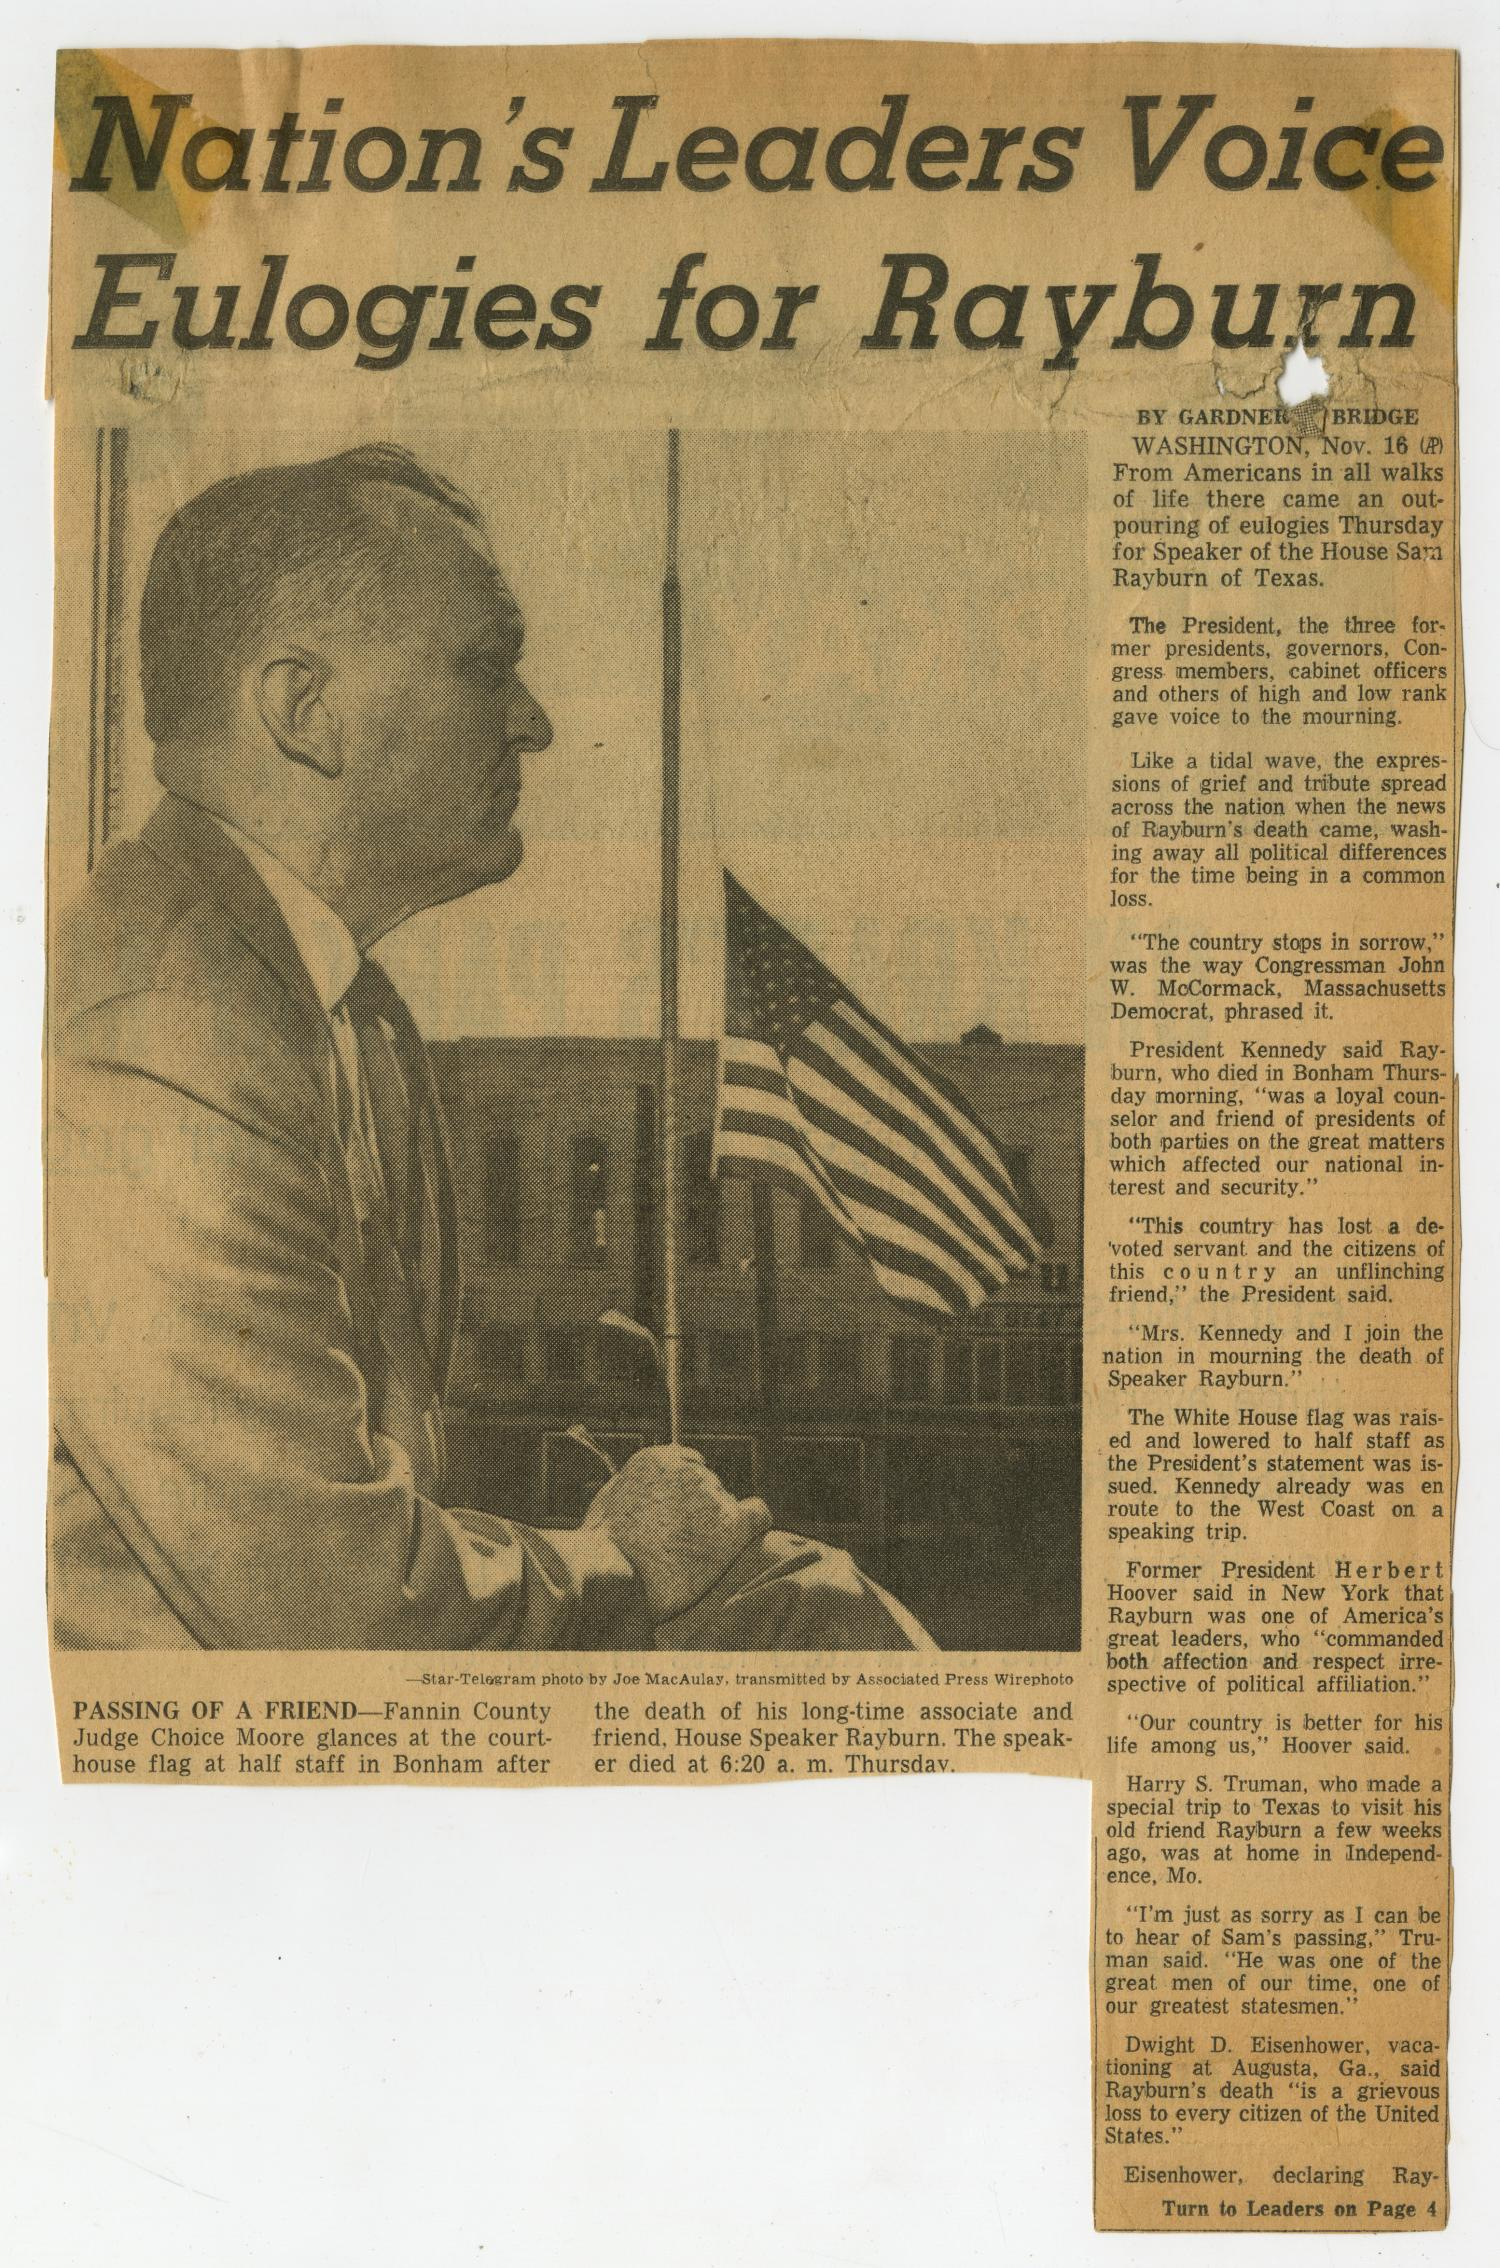 Newspaper Clipping: Nations Leaders Voice Eulogies for Rayburn